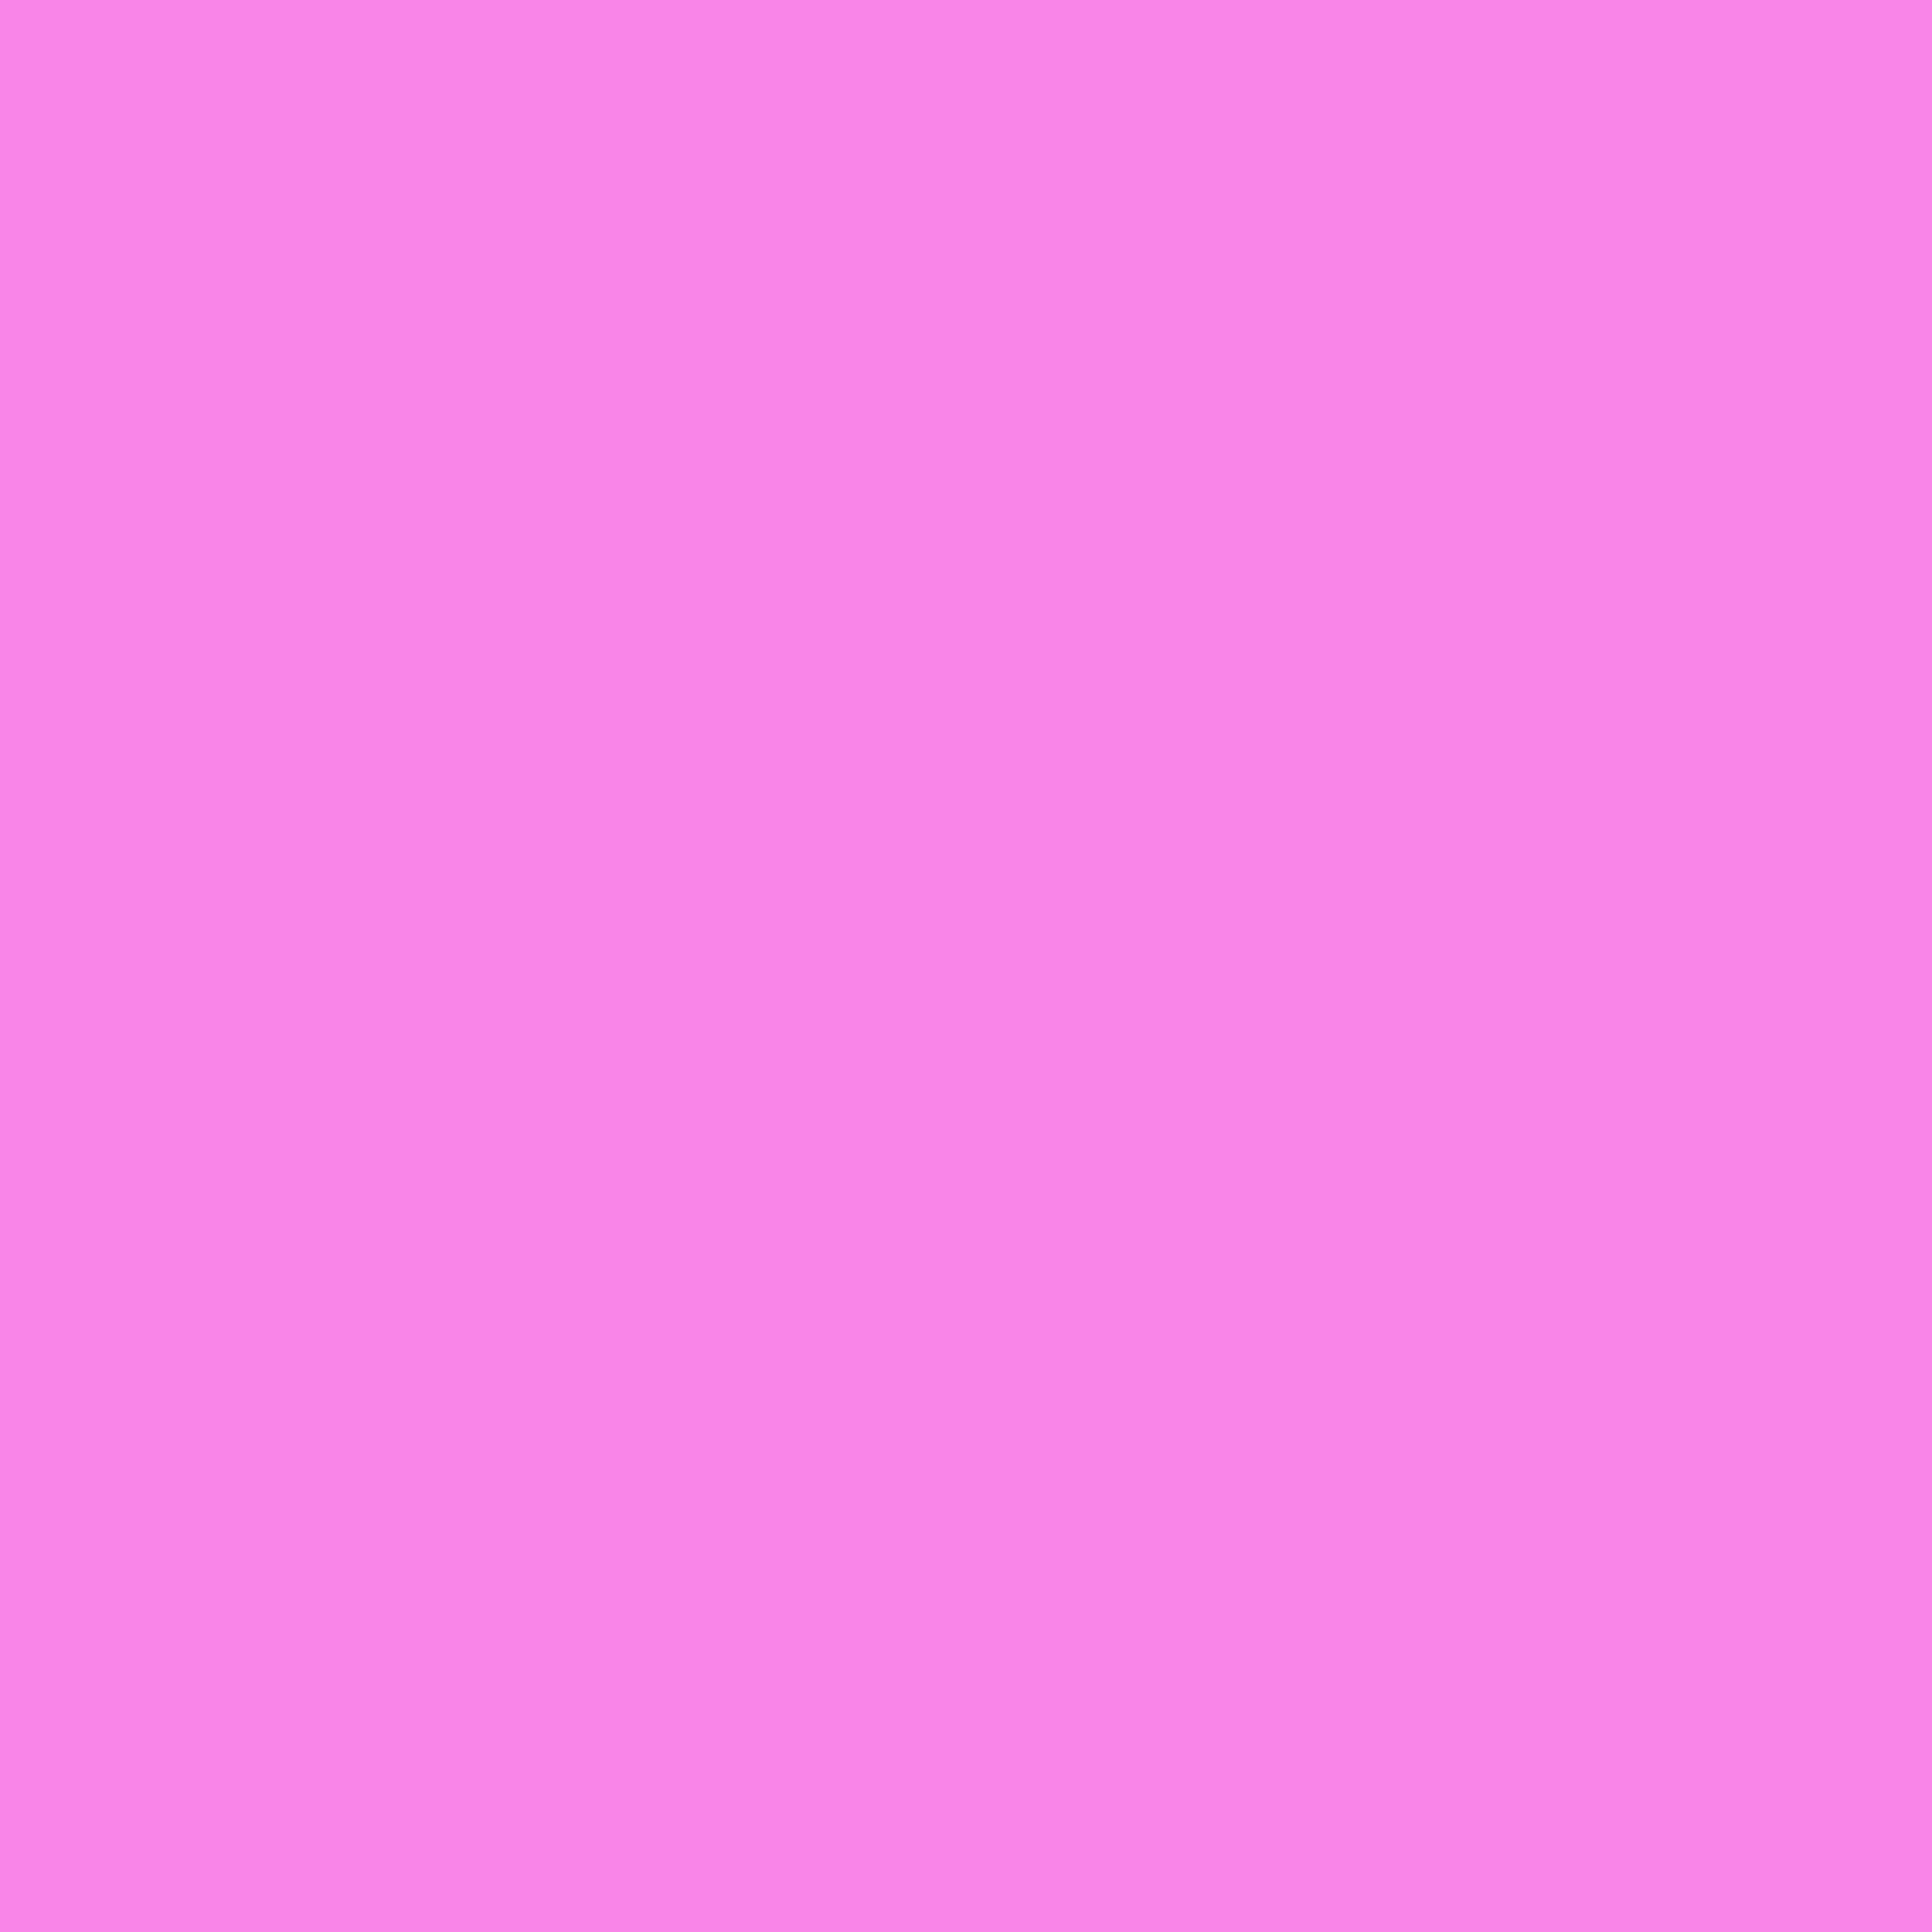 3600x3600 Pale Magenta Solid Color Background